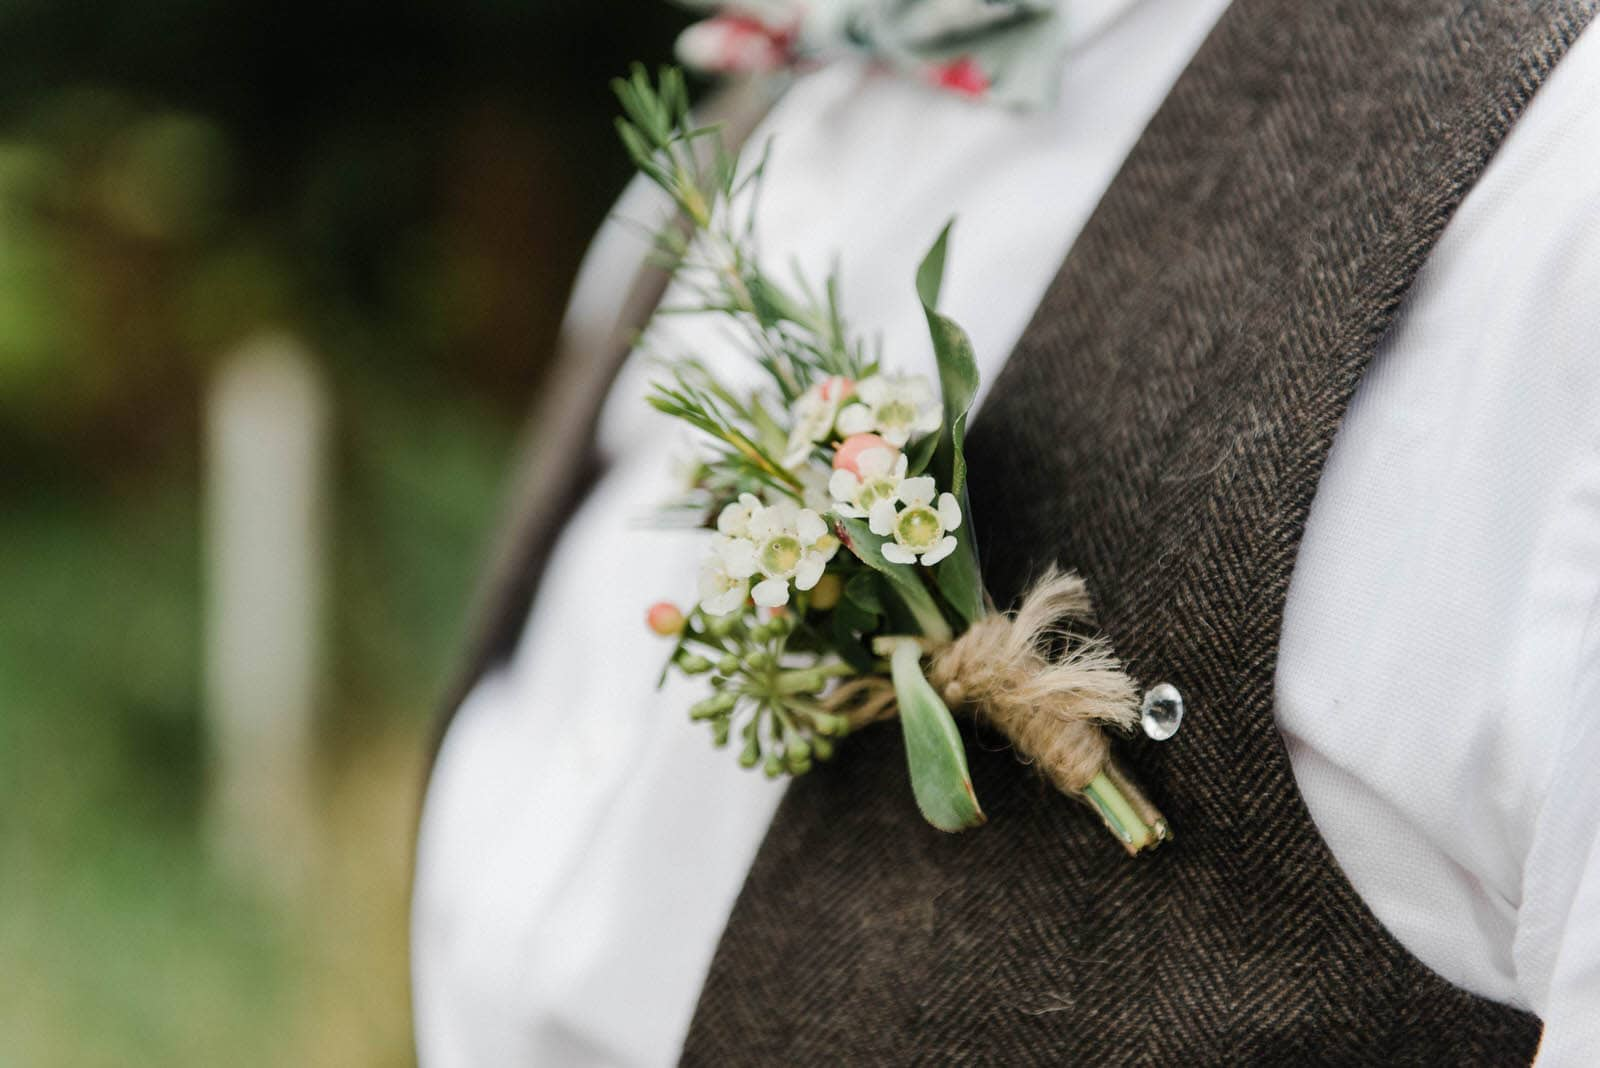 Close up photograph of a beautiful flower button hole on the groom